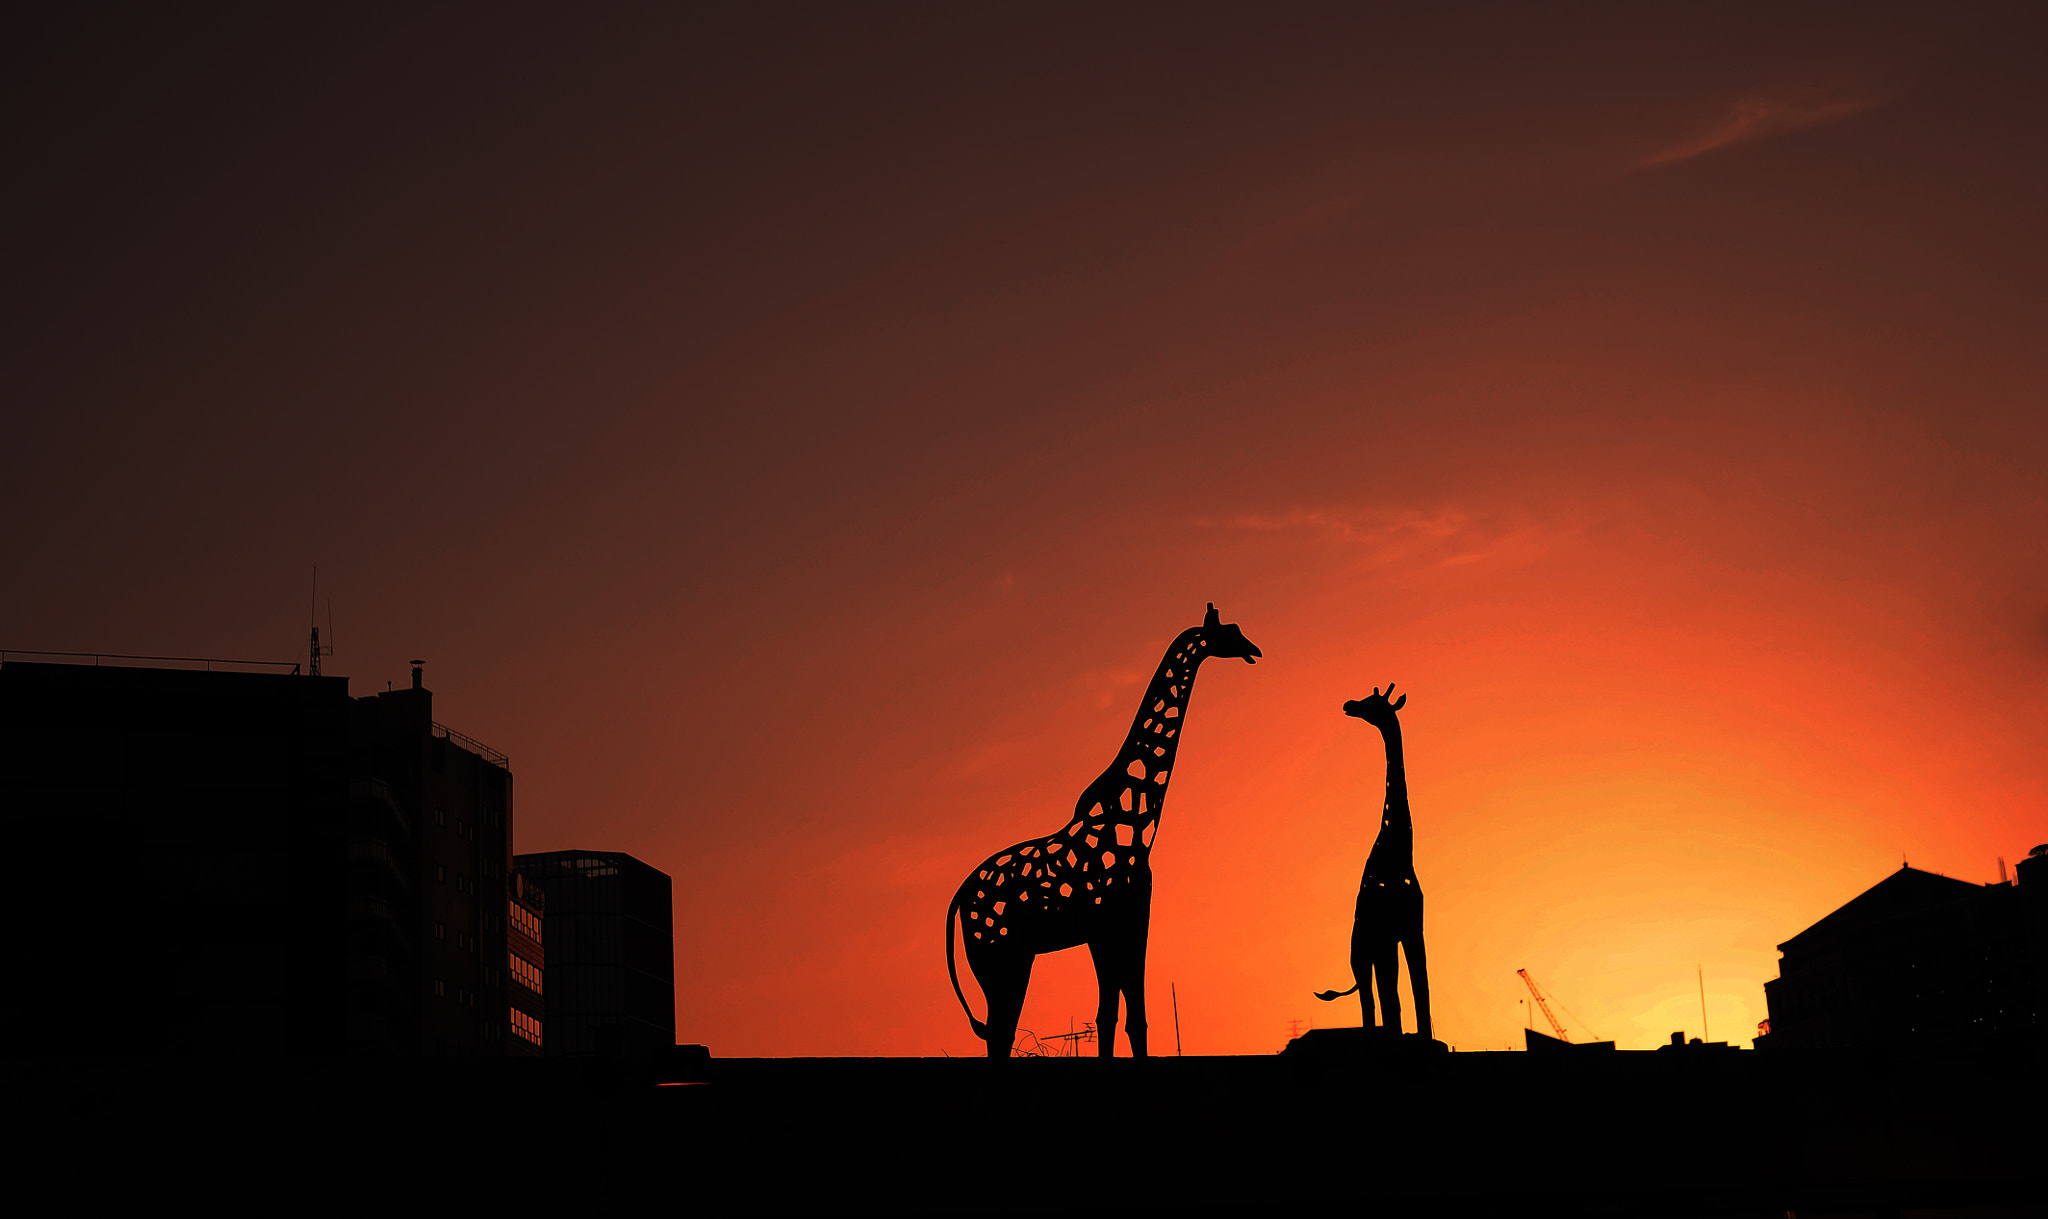 Photograph Giraffe on the roof by Sunyoung Lee on 500px